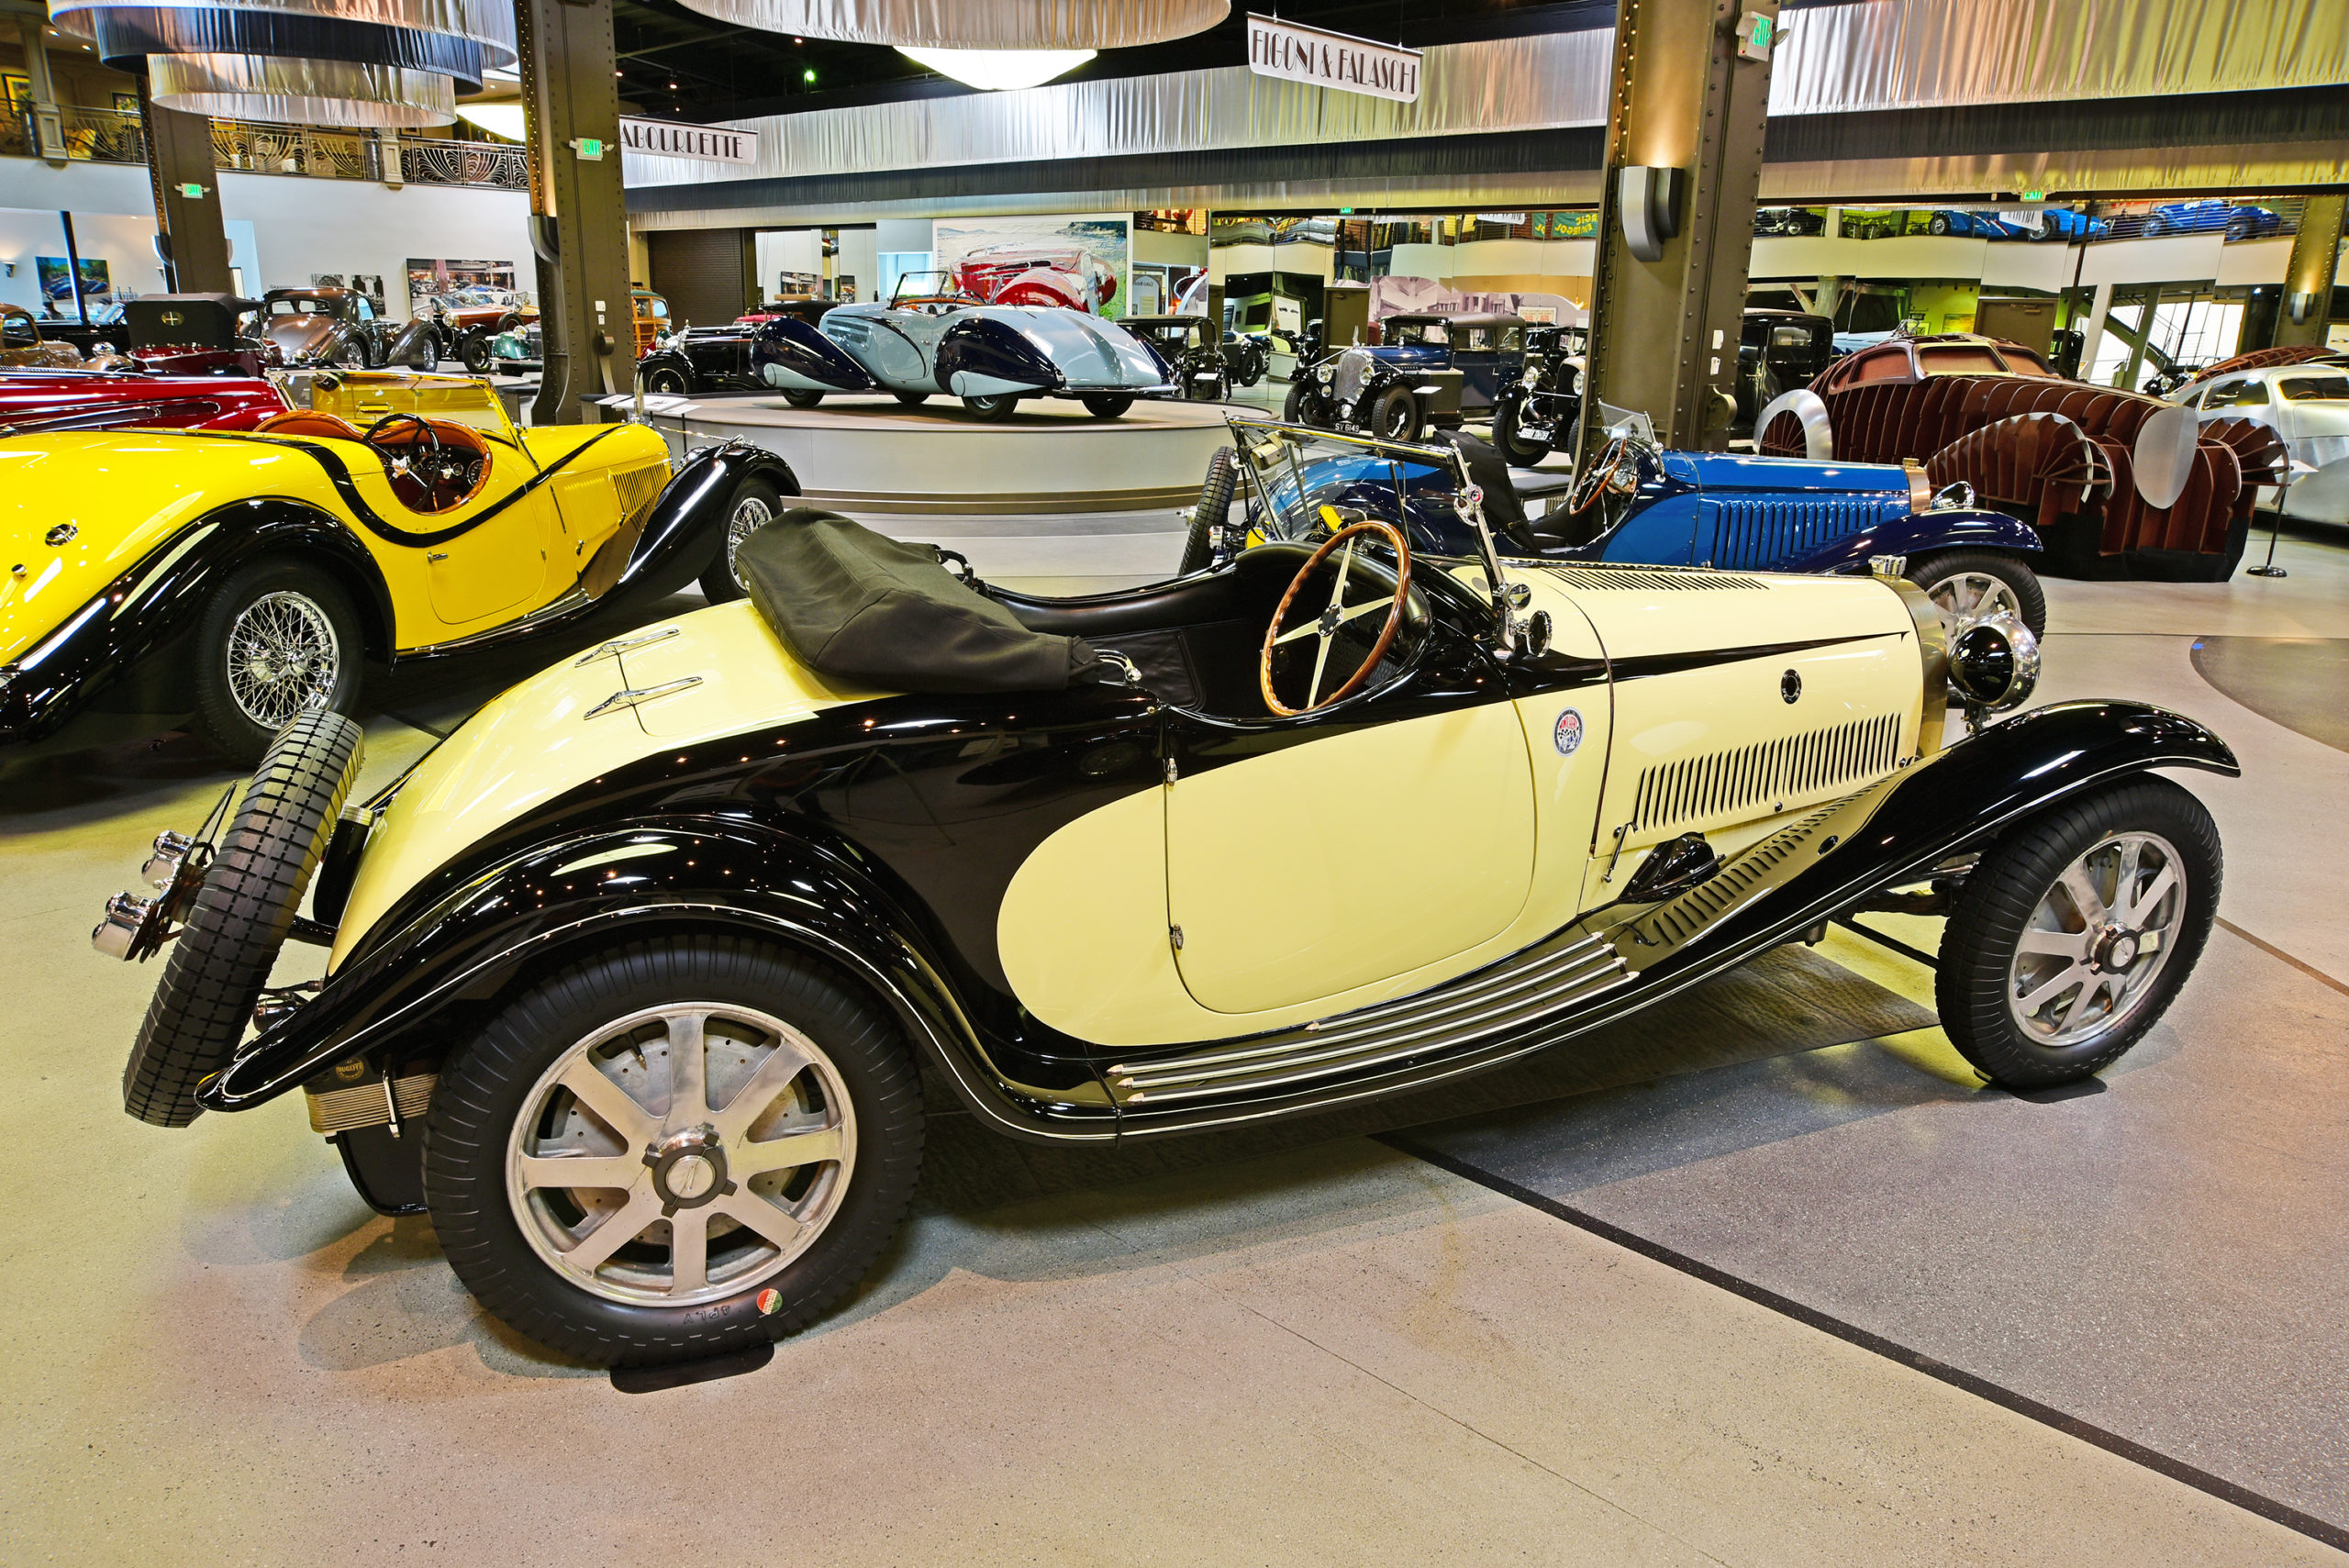 10 Best Car Museums For Gearheads